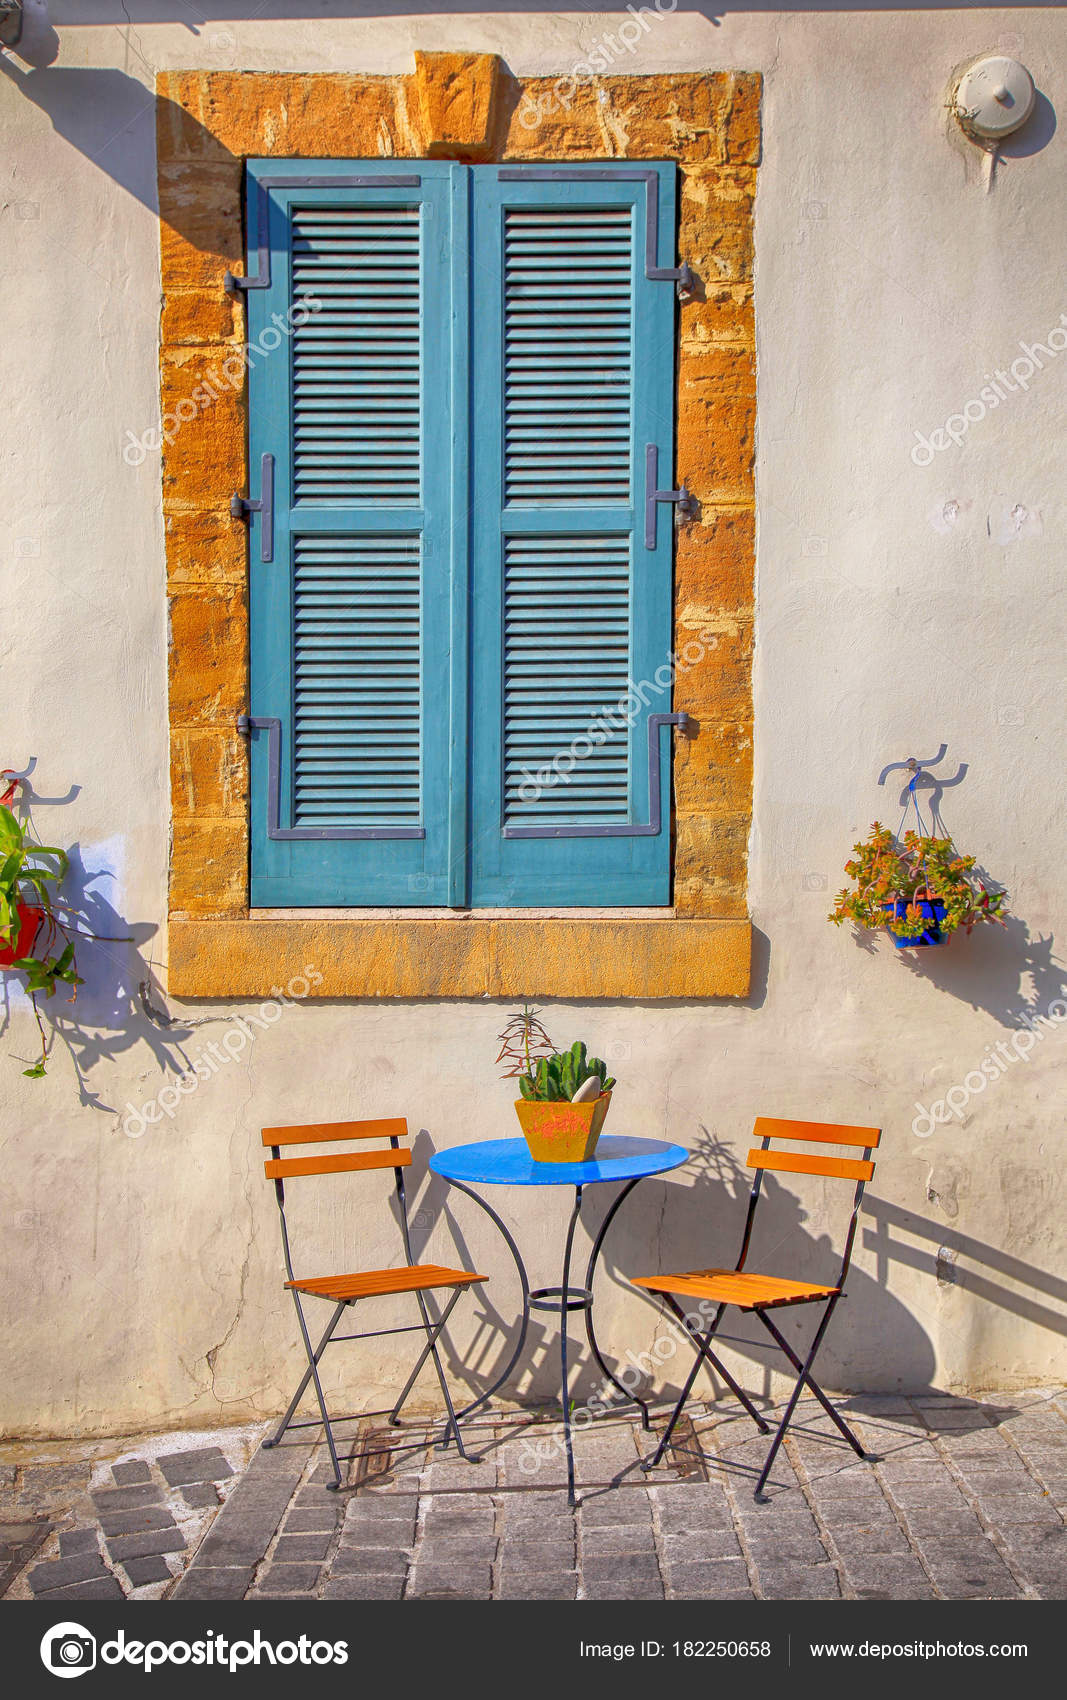 Blue Shutters Window And Small Chairs Andtable On Sidewalk